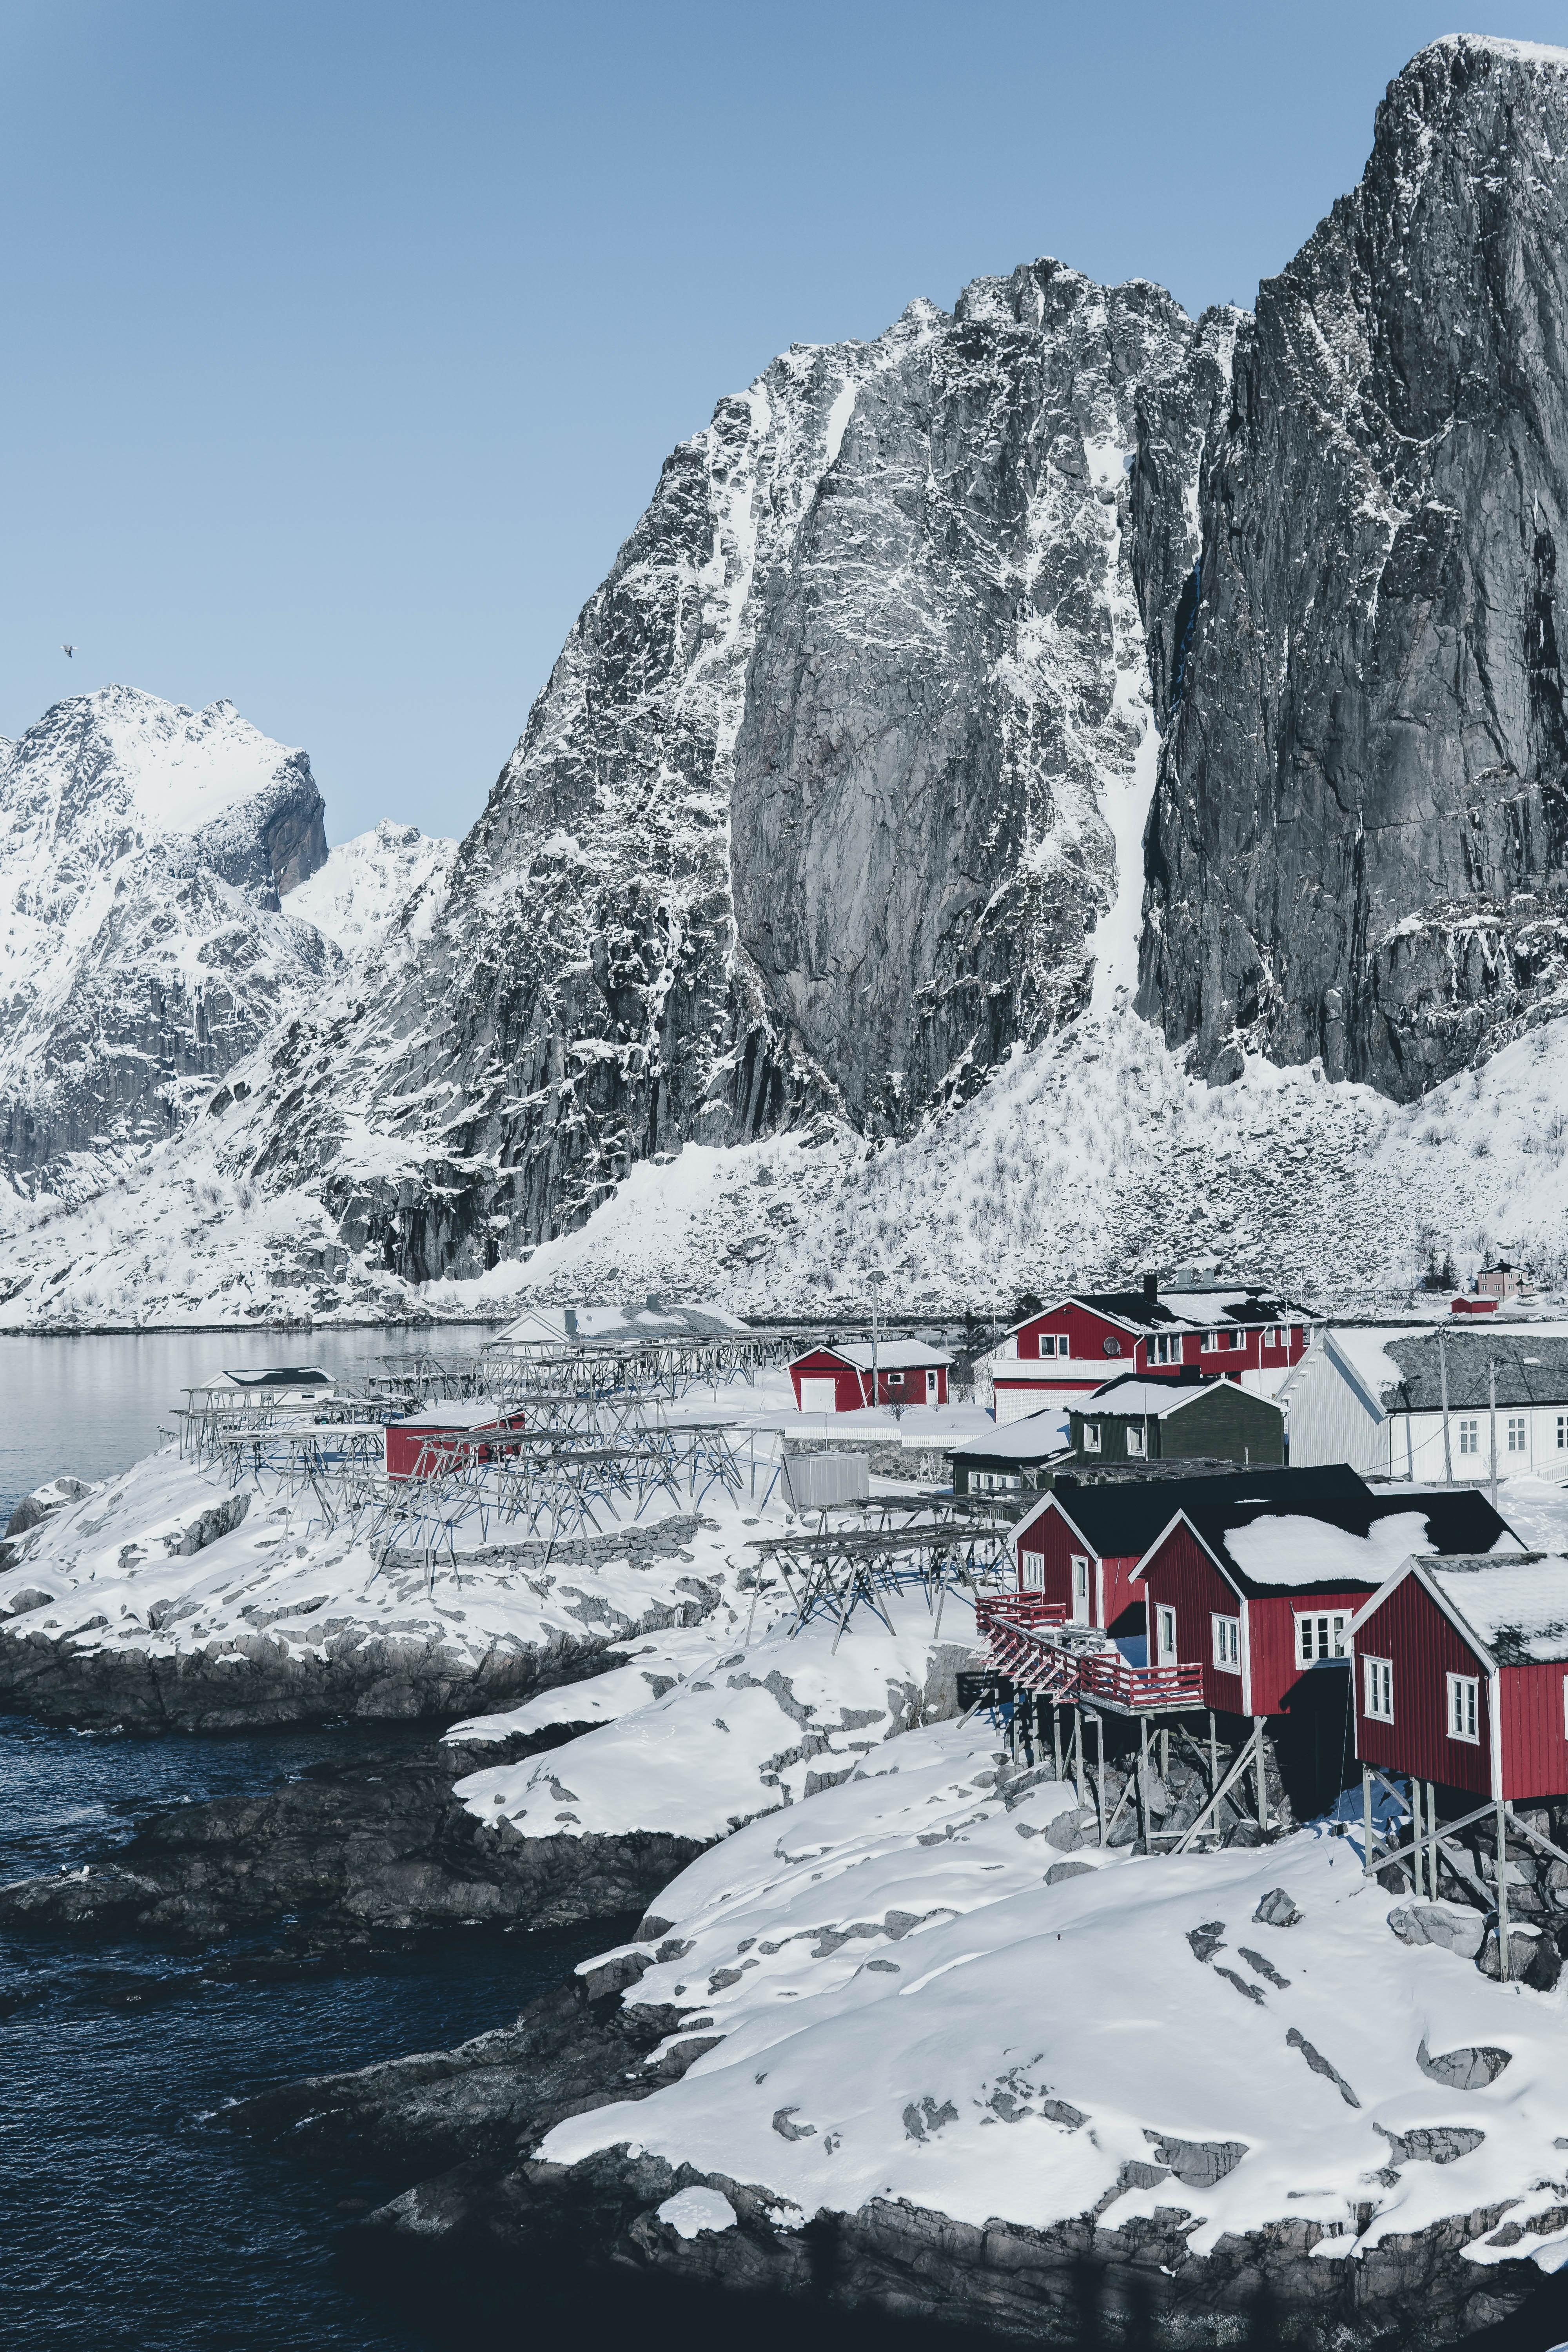 houses near body of water covered by snow